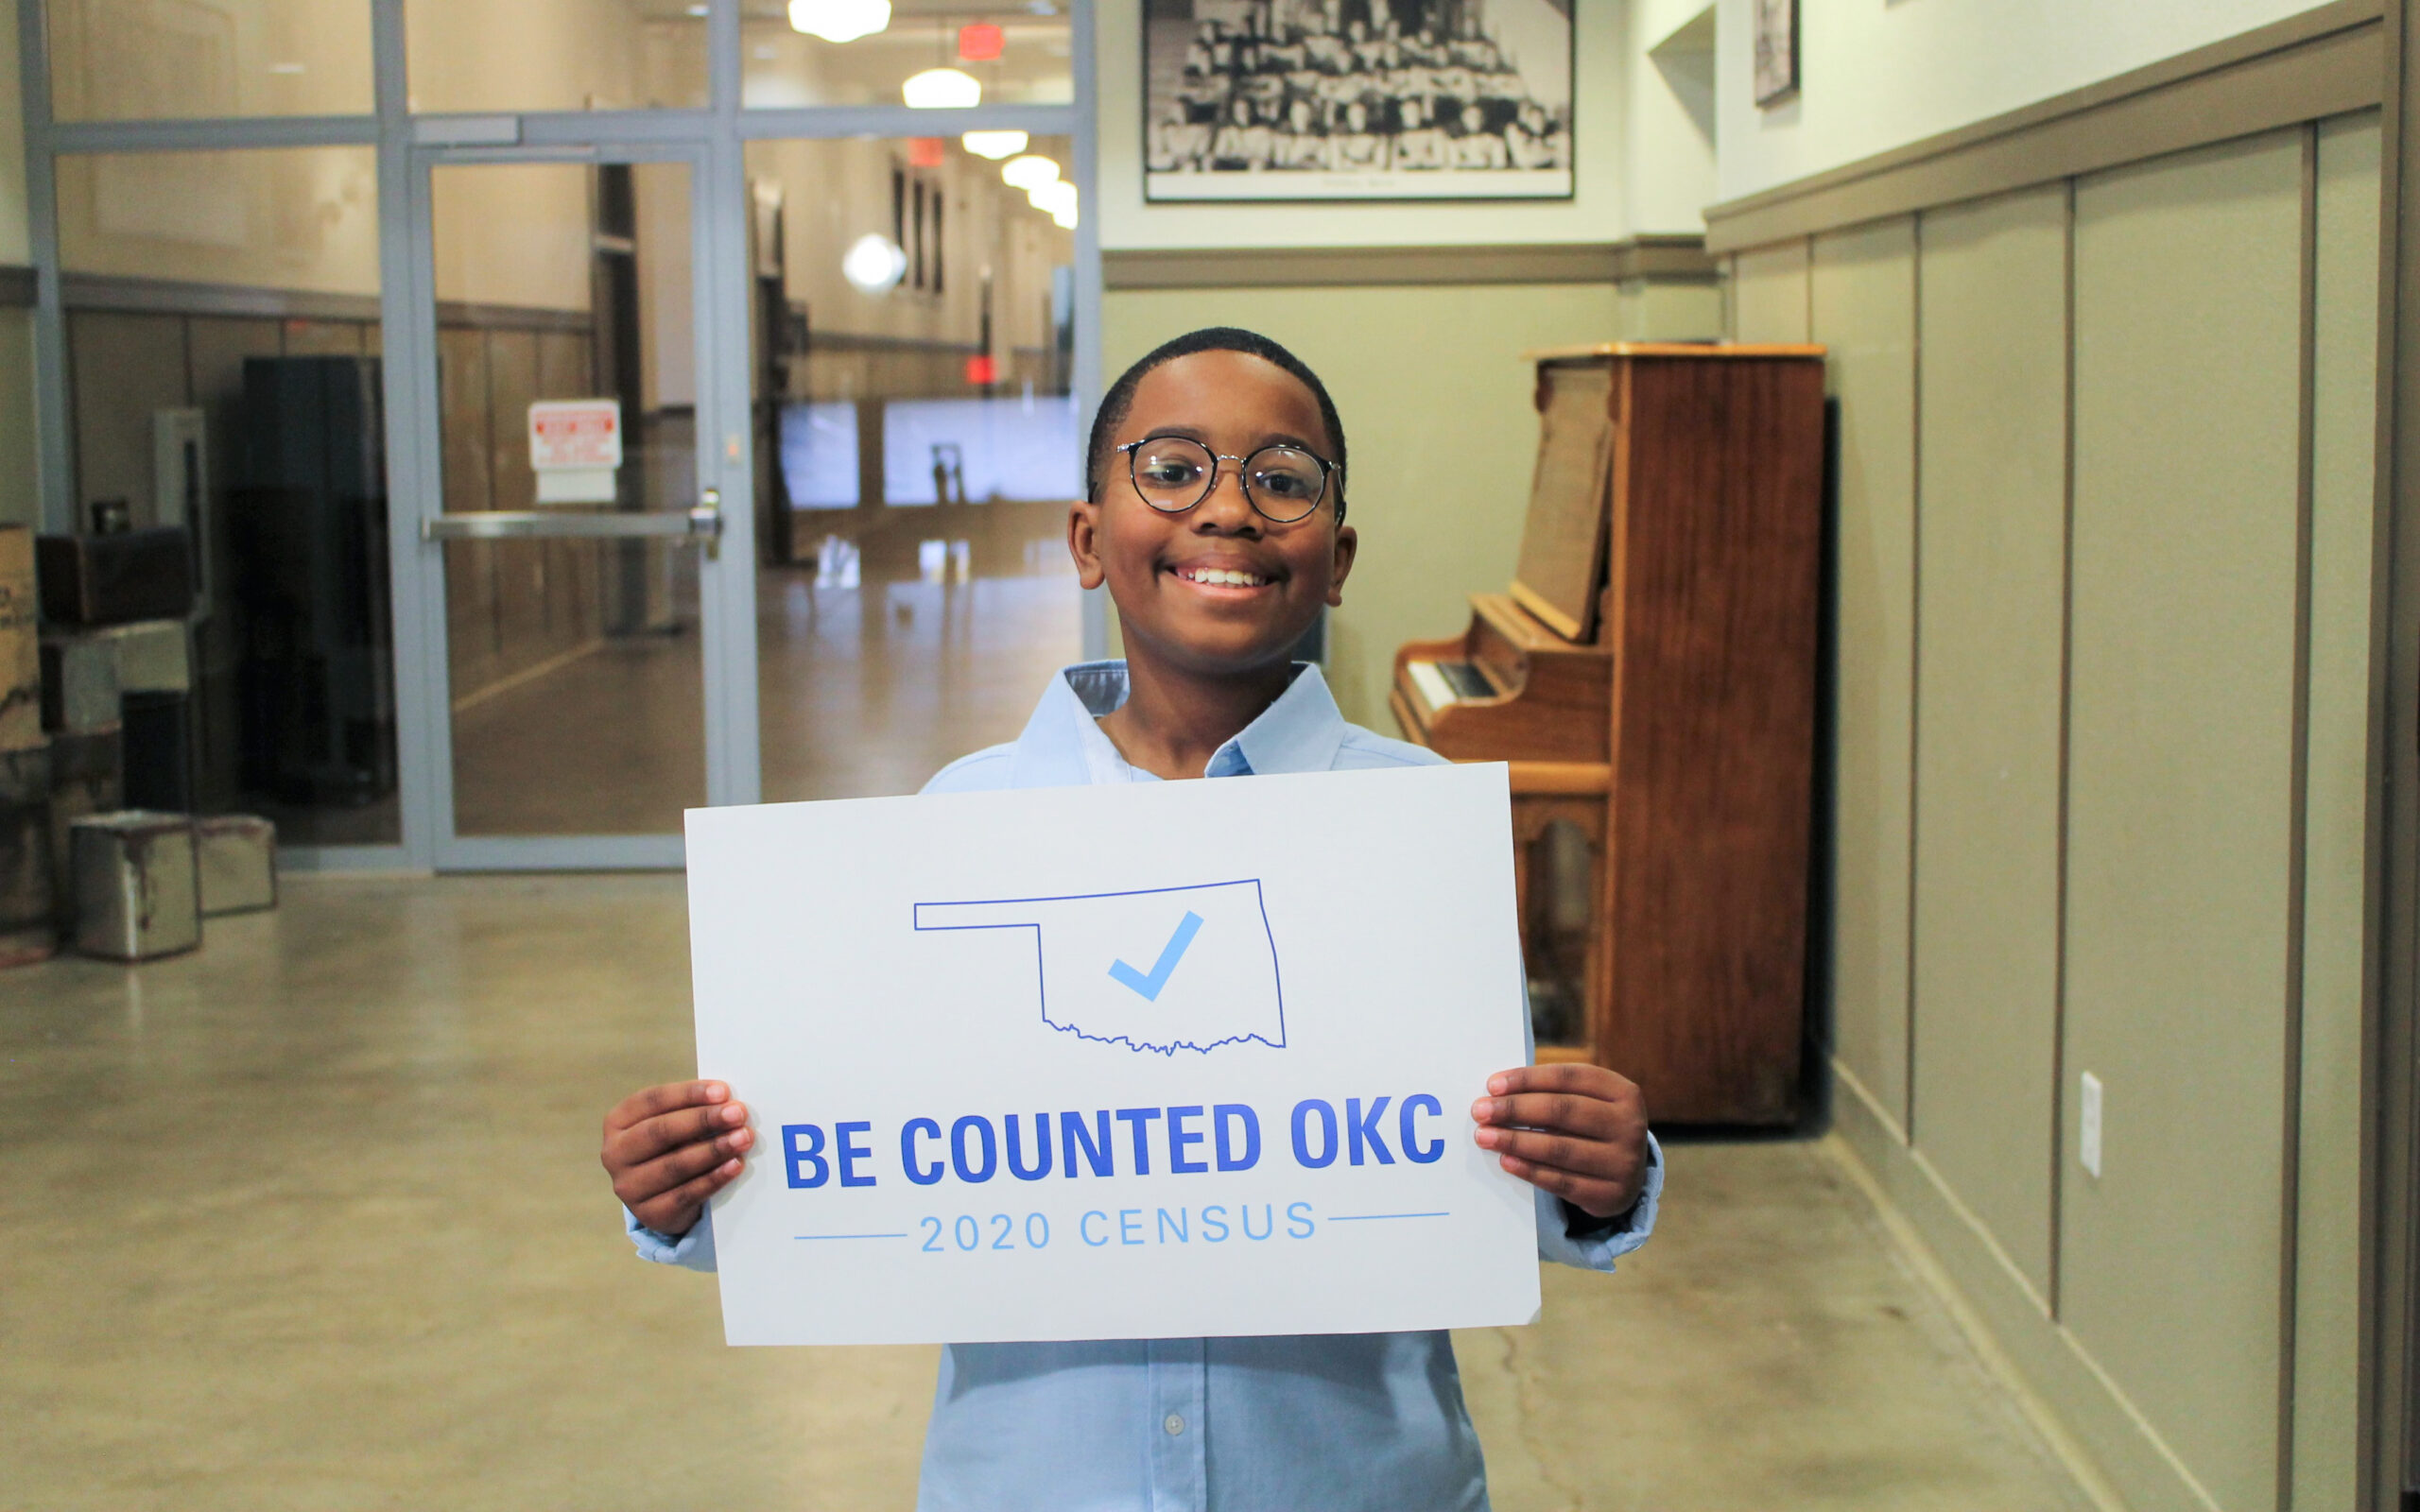 Be Counted OKC 2020 Census photography